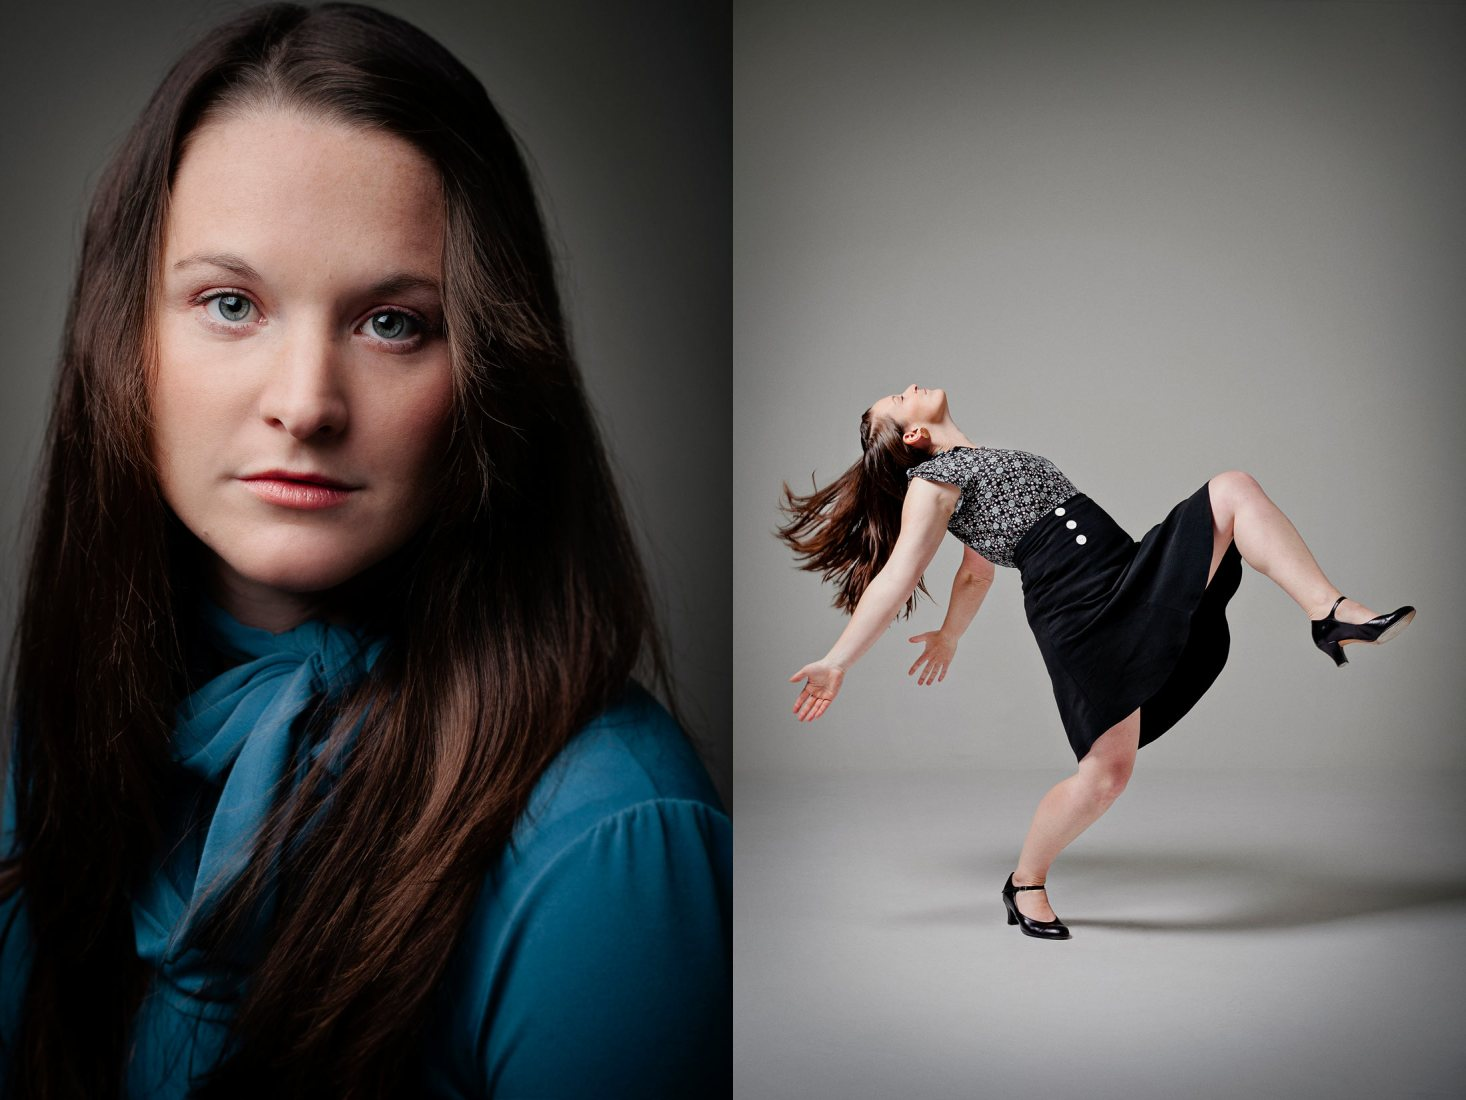 Creative portrait photography of dancers - by Brence Coghill, Melbourne photographer of Image Workshop photography